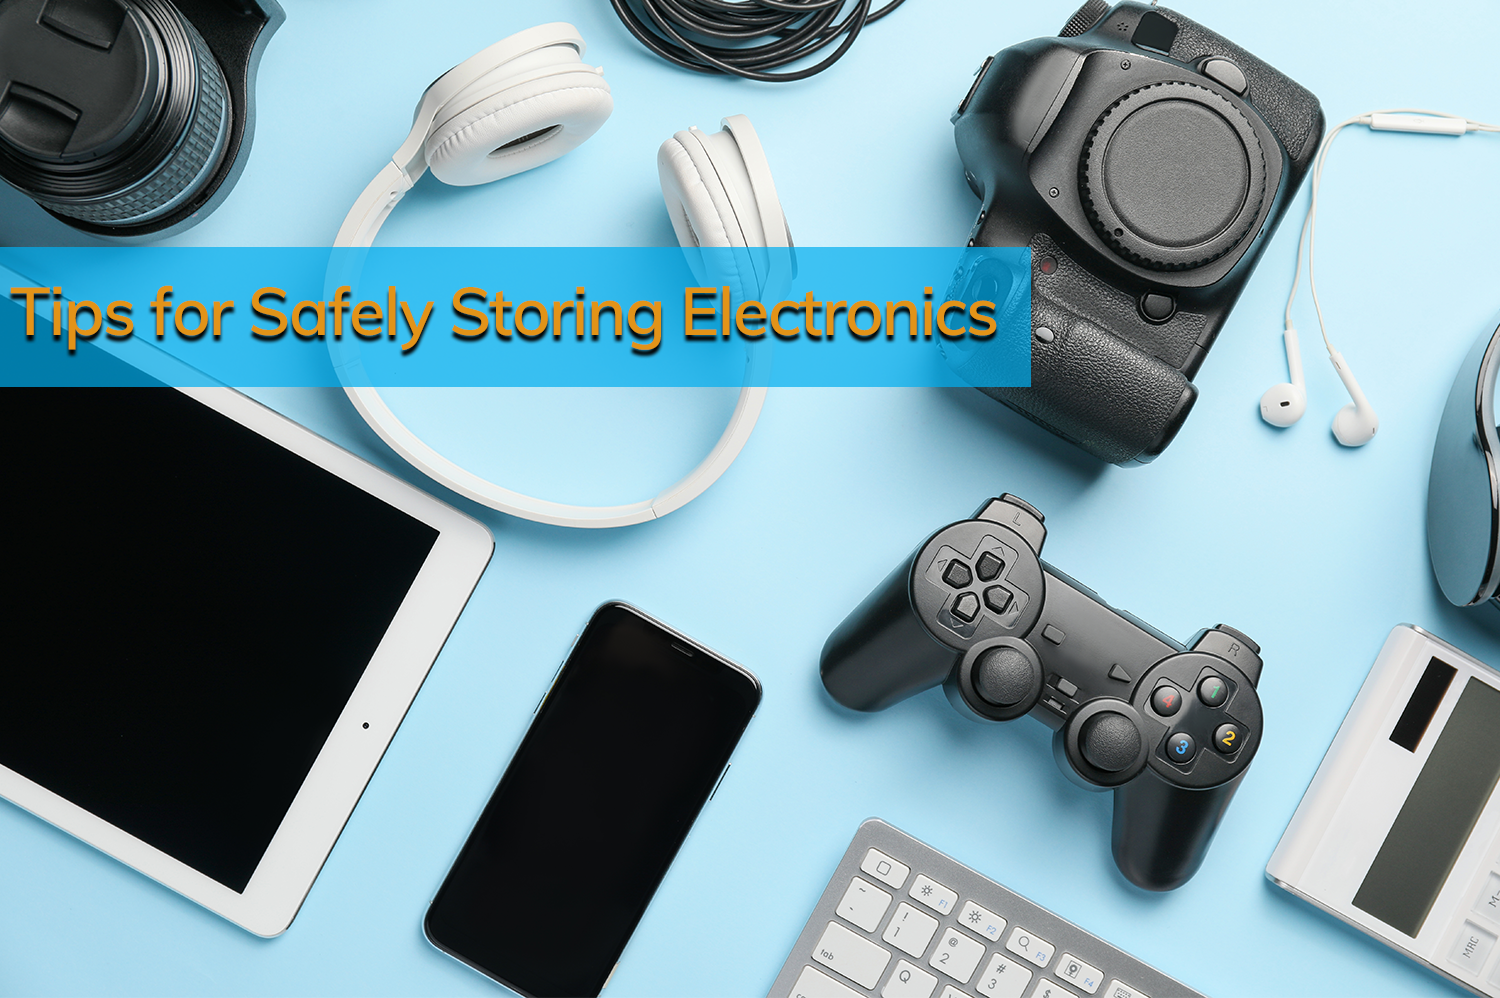 Electronics (a mcamera, headphones, smart phones, keyboard, cables, tablet, game controller) on a light blue background for storing electronics.